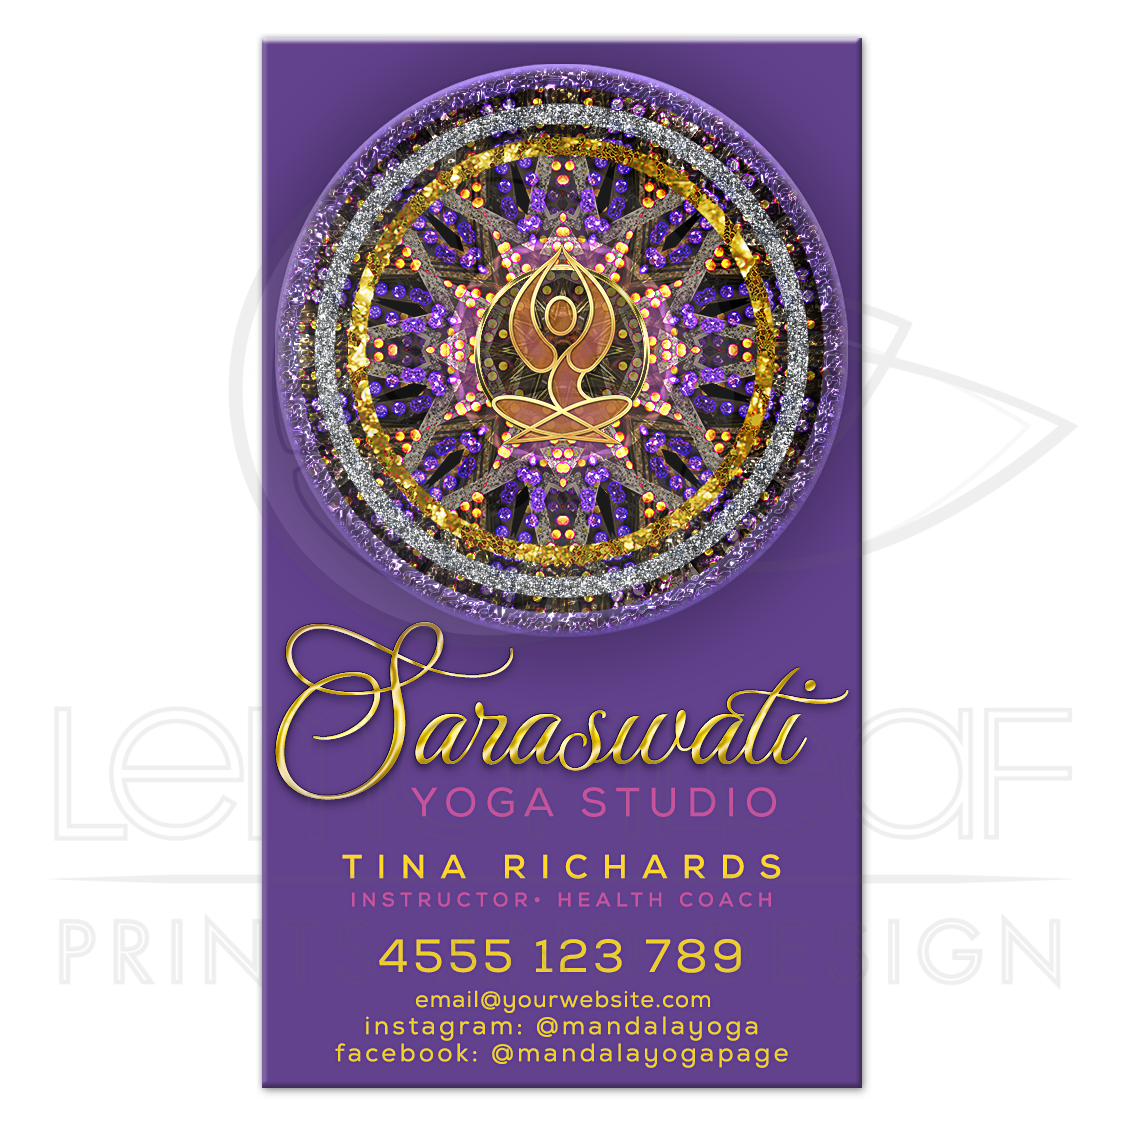 Mandala yoga goddess purple business card mandala yoga goddess purple and gold business card colourmoves